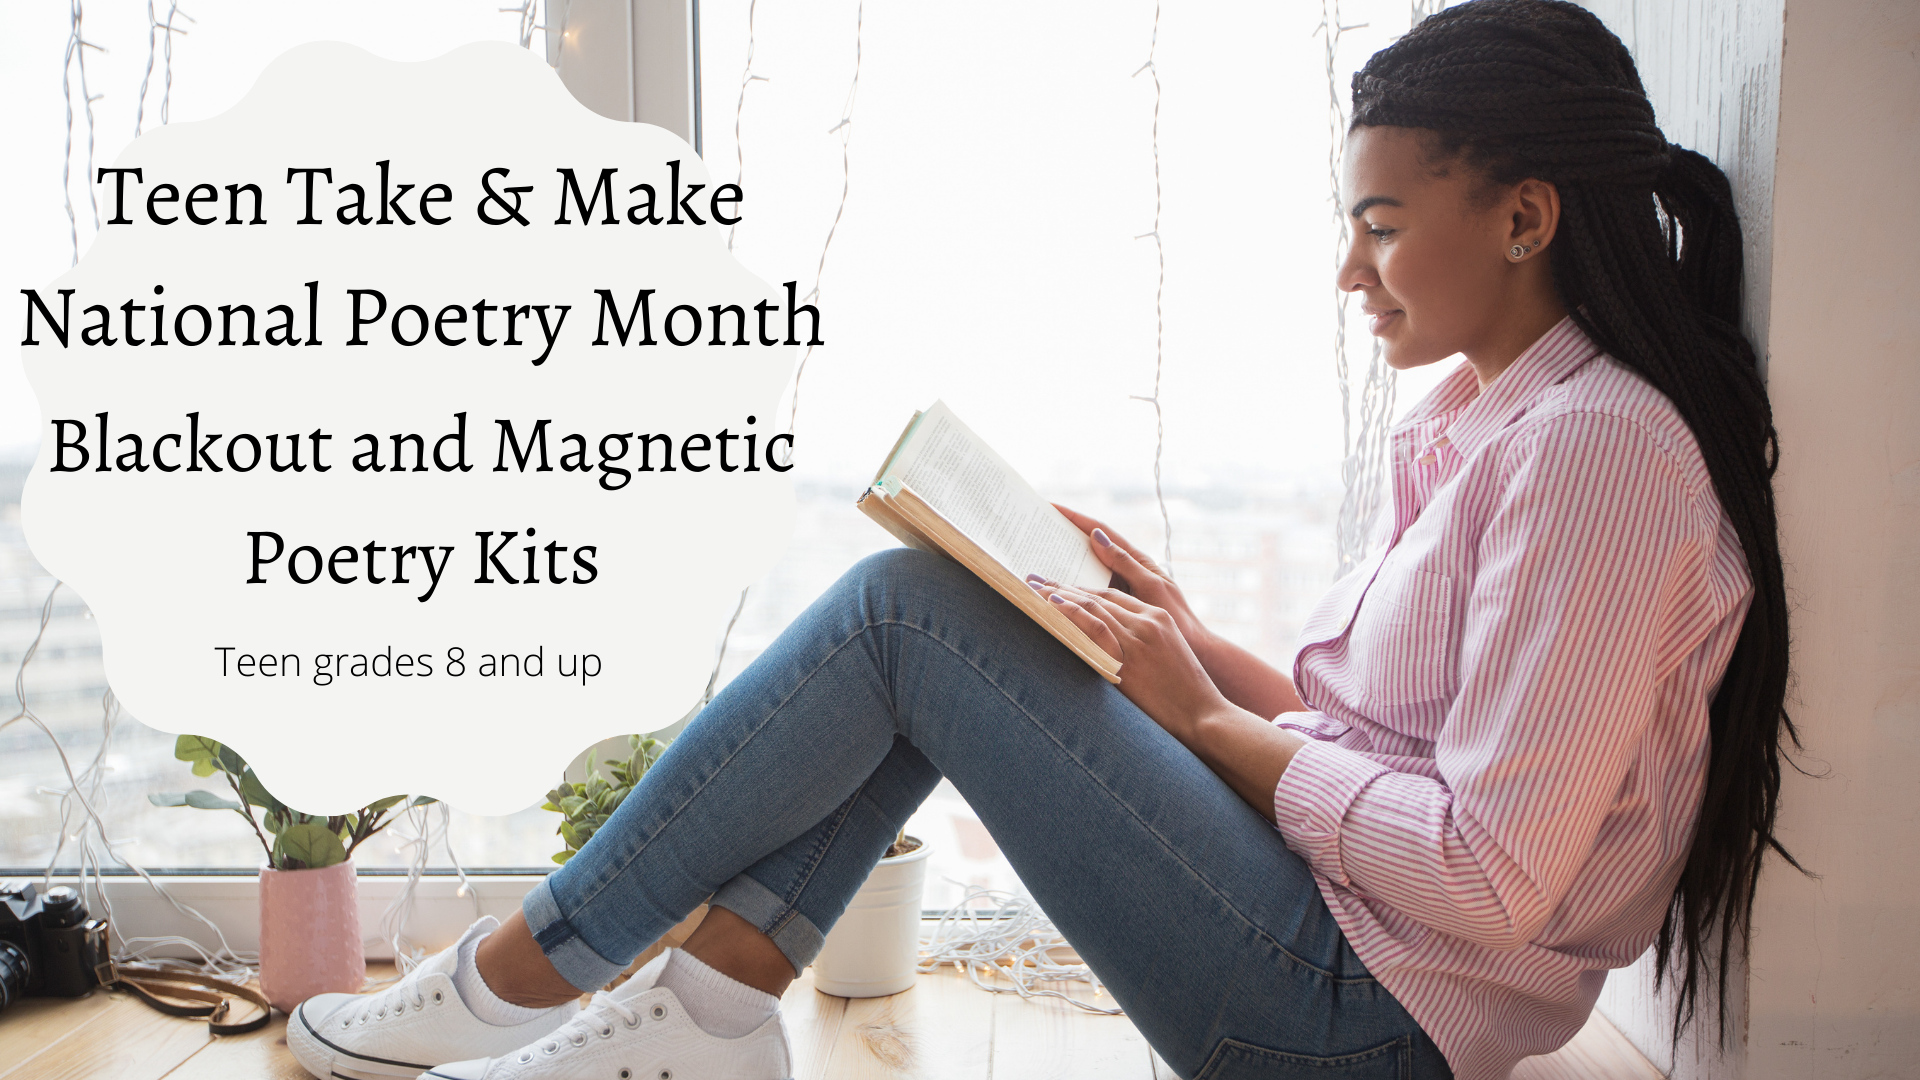 Teen Take & Make: National Poetry Month